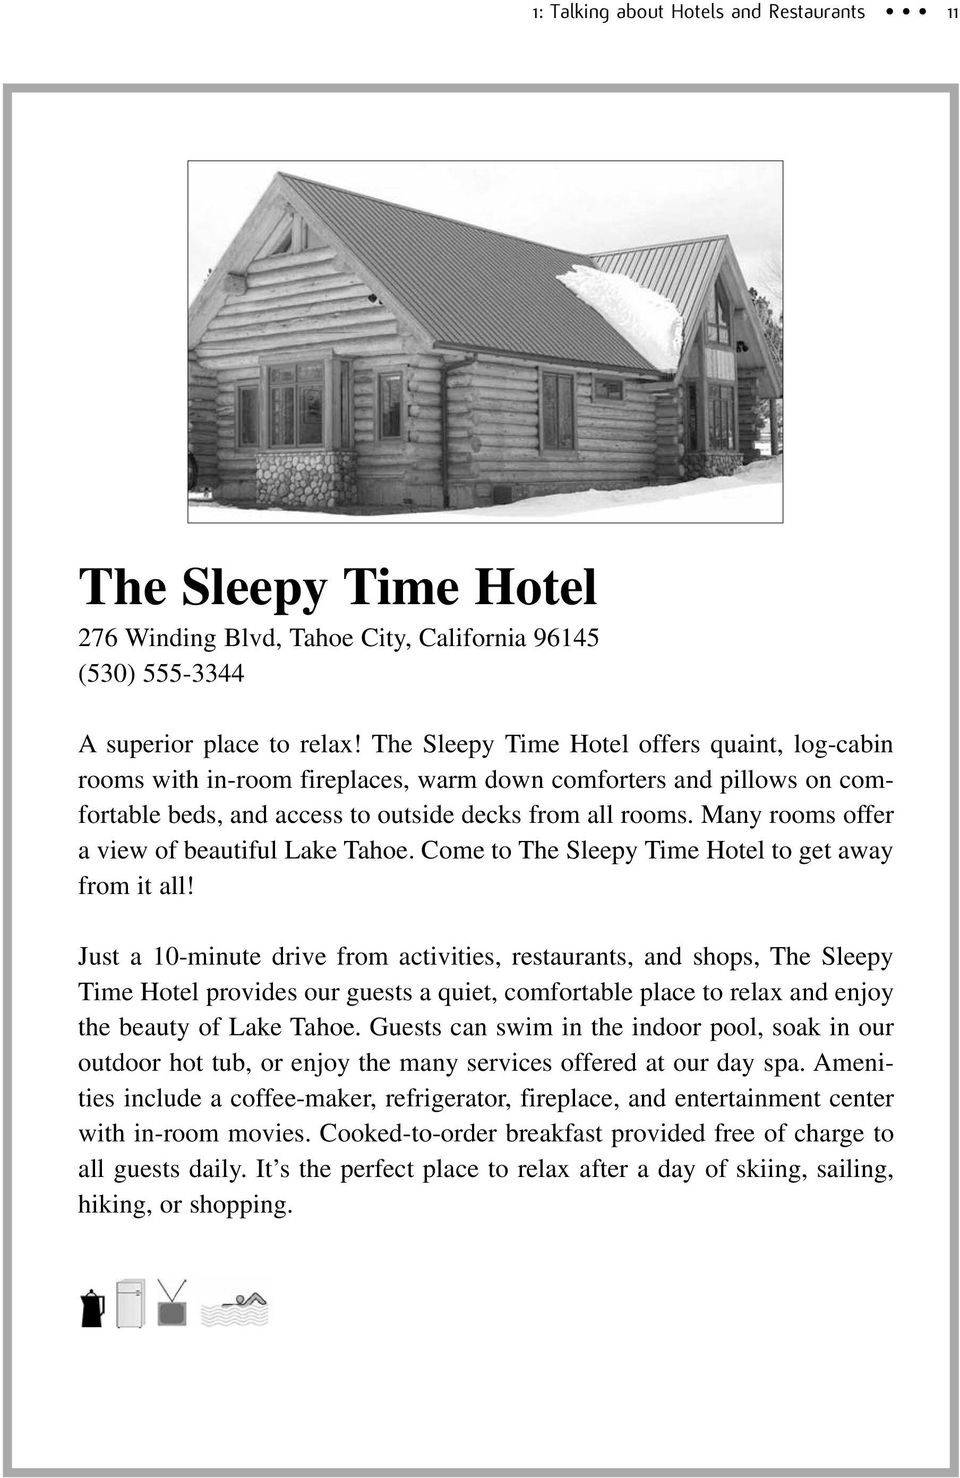 Many rooms offer a view of beautiful Lake Tahoe. Come to The Sleepy Time Hotel to get away from it all!